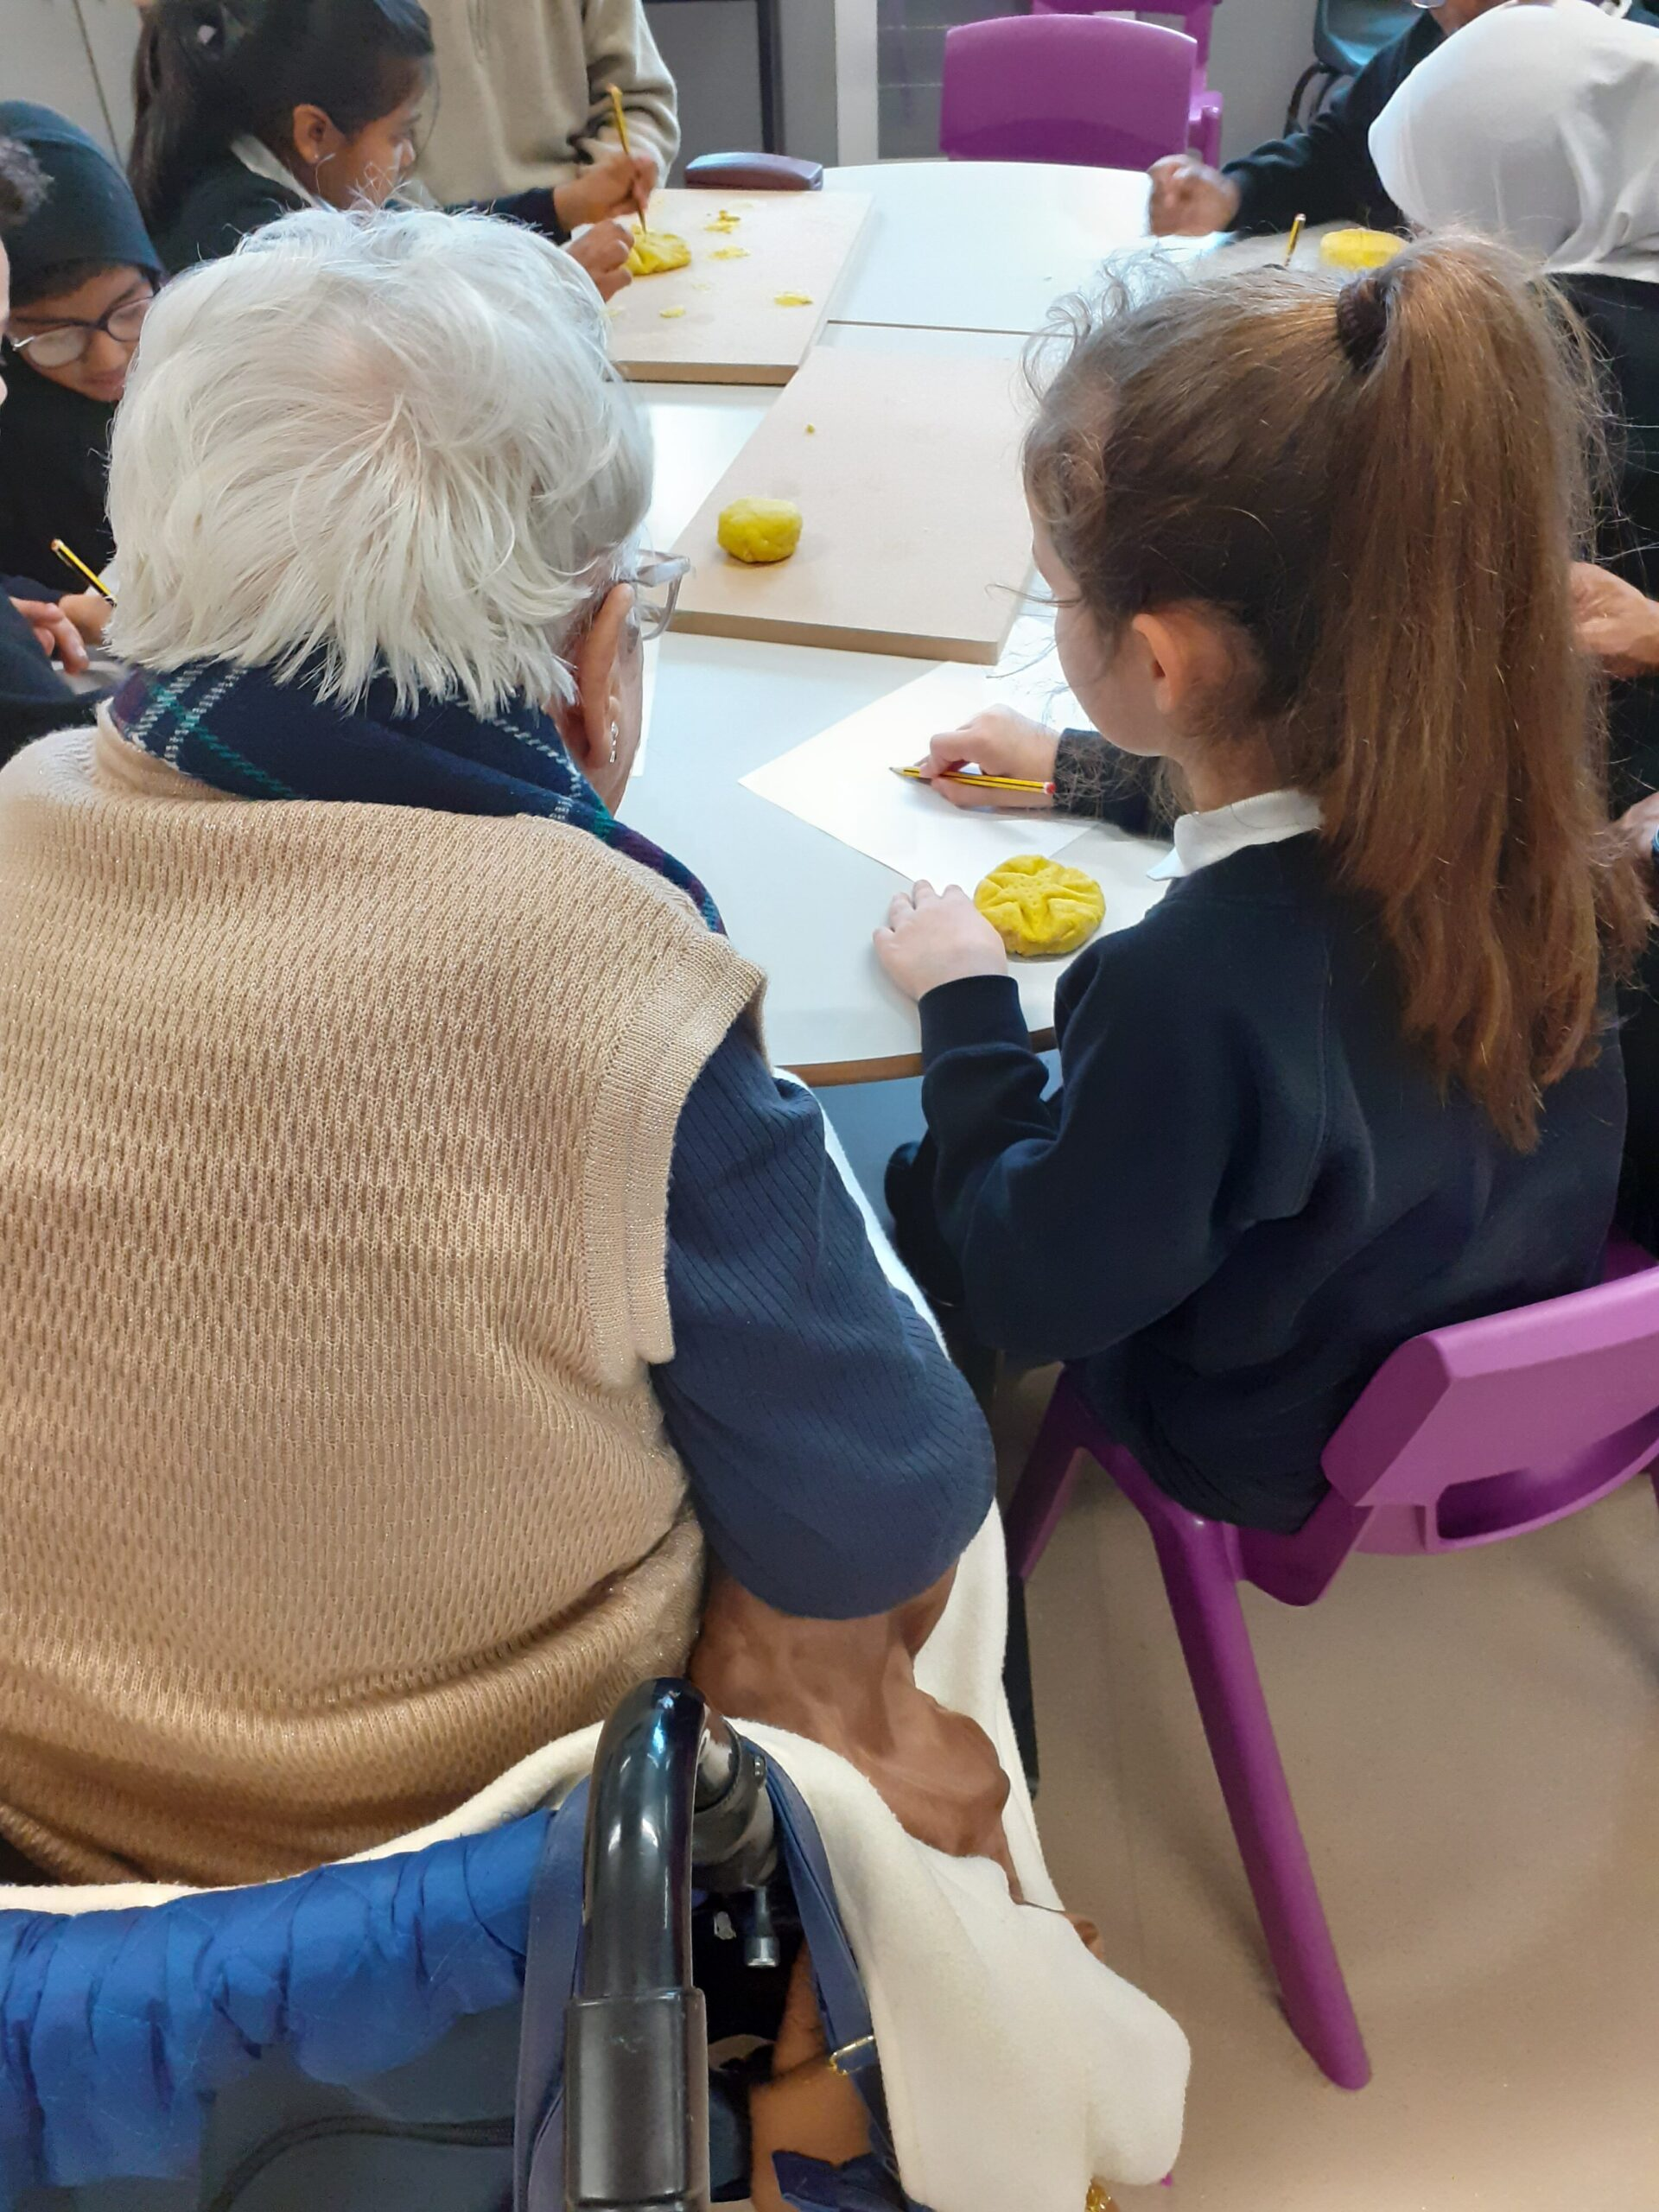 Intergenerational gathering at George Mitchell School as part of Tapestry Tuesday project part of Quality Street - pink chair